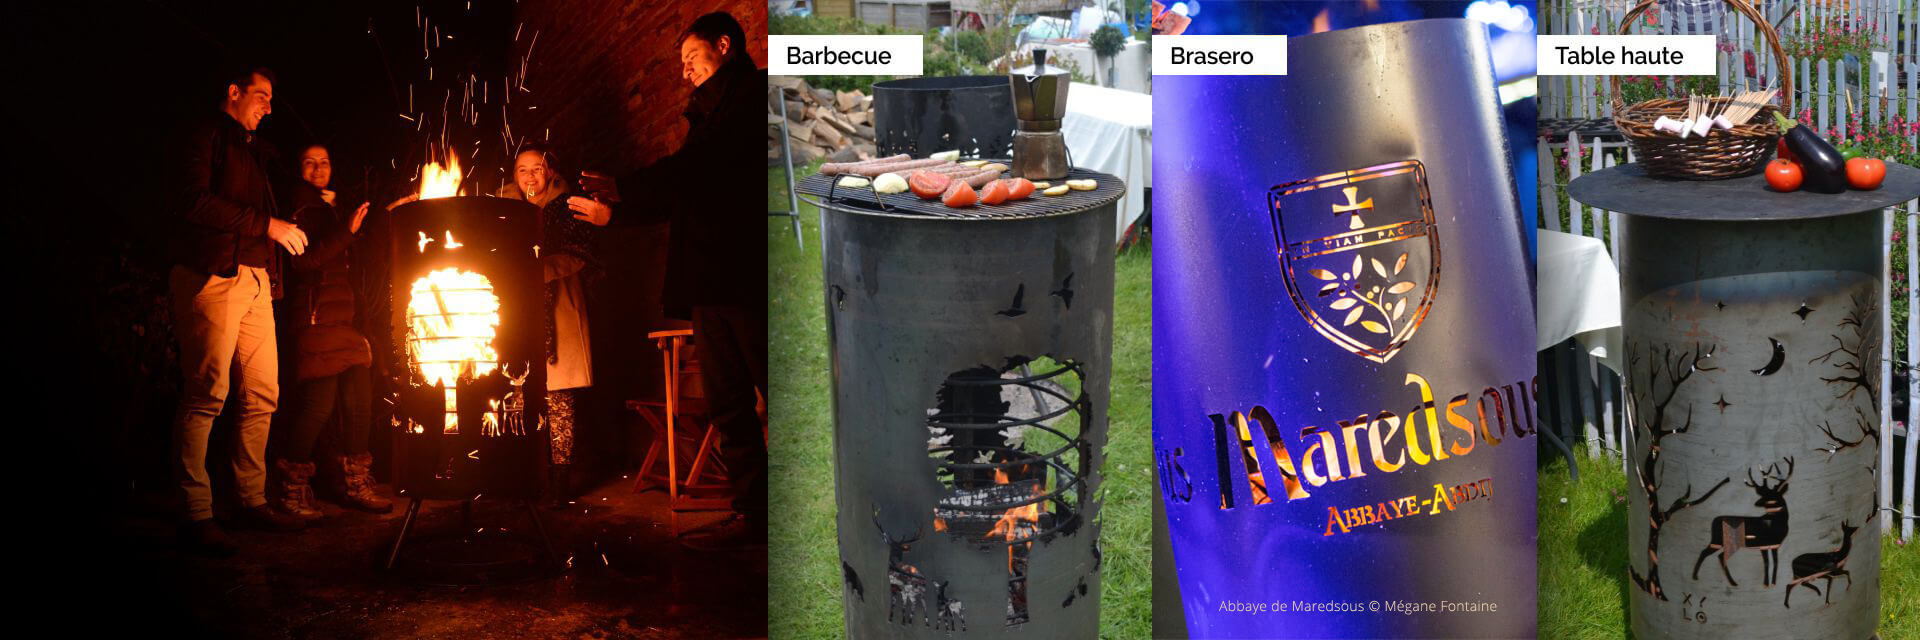 Braseros barbecue?7